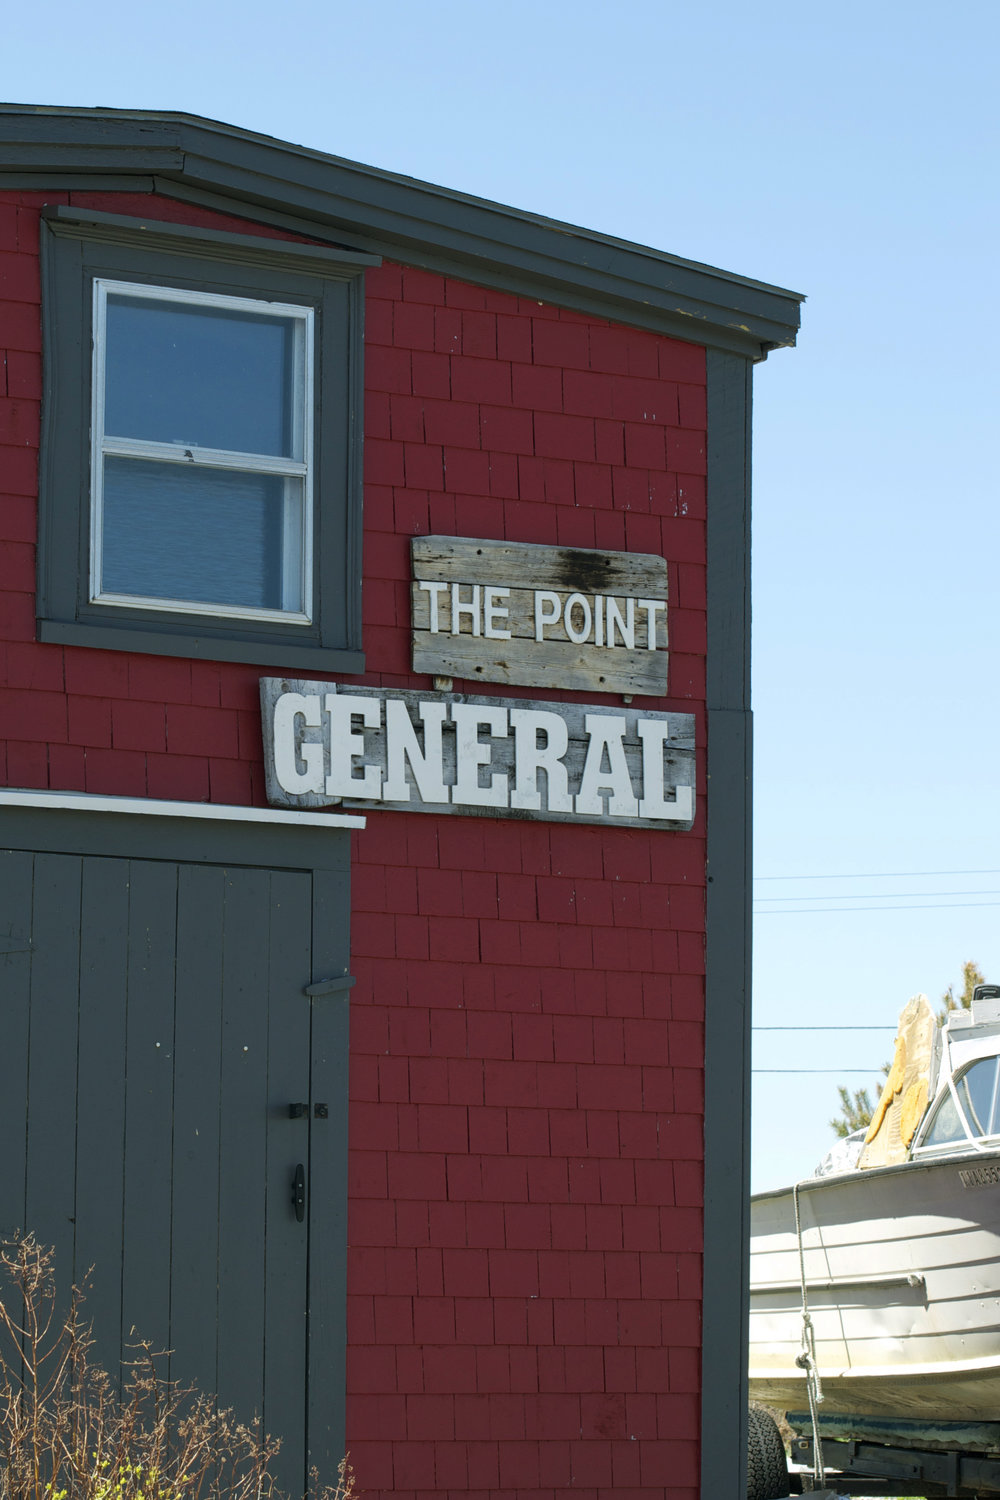 the point general.jpg